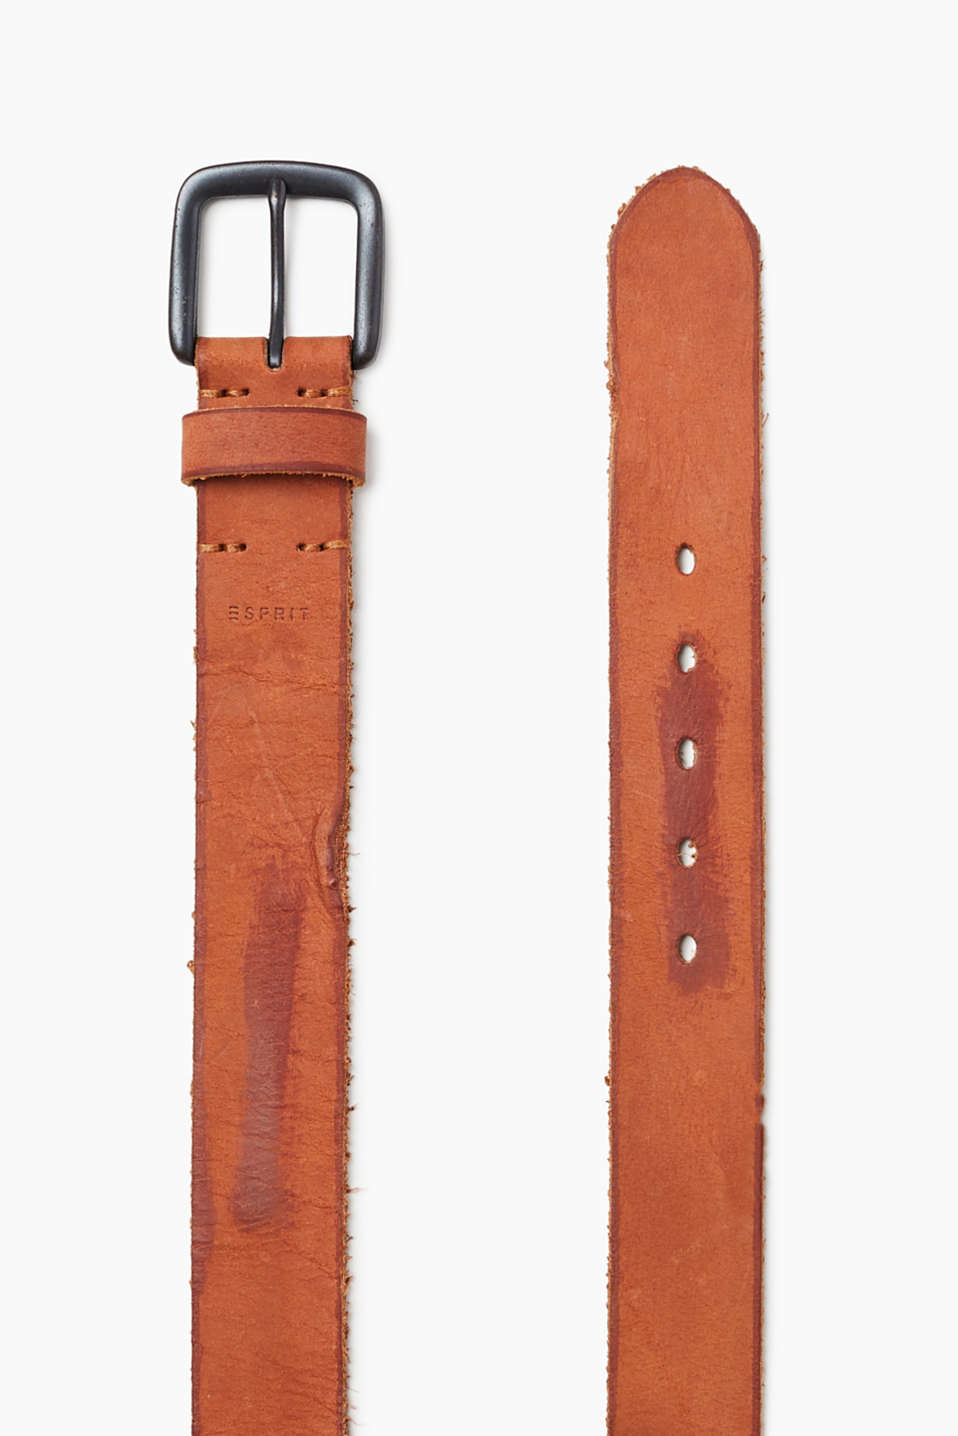 Nubuck leather in a vintage finish and a distinctive metal buckle – the perfect belt for urban denim looks!